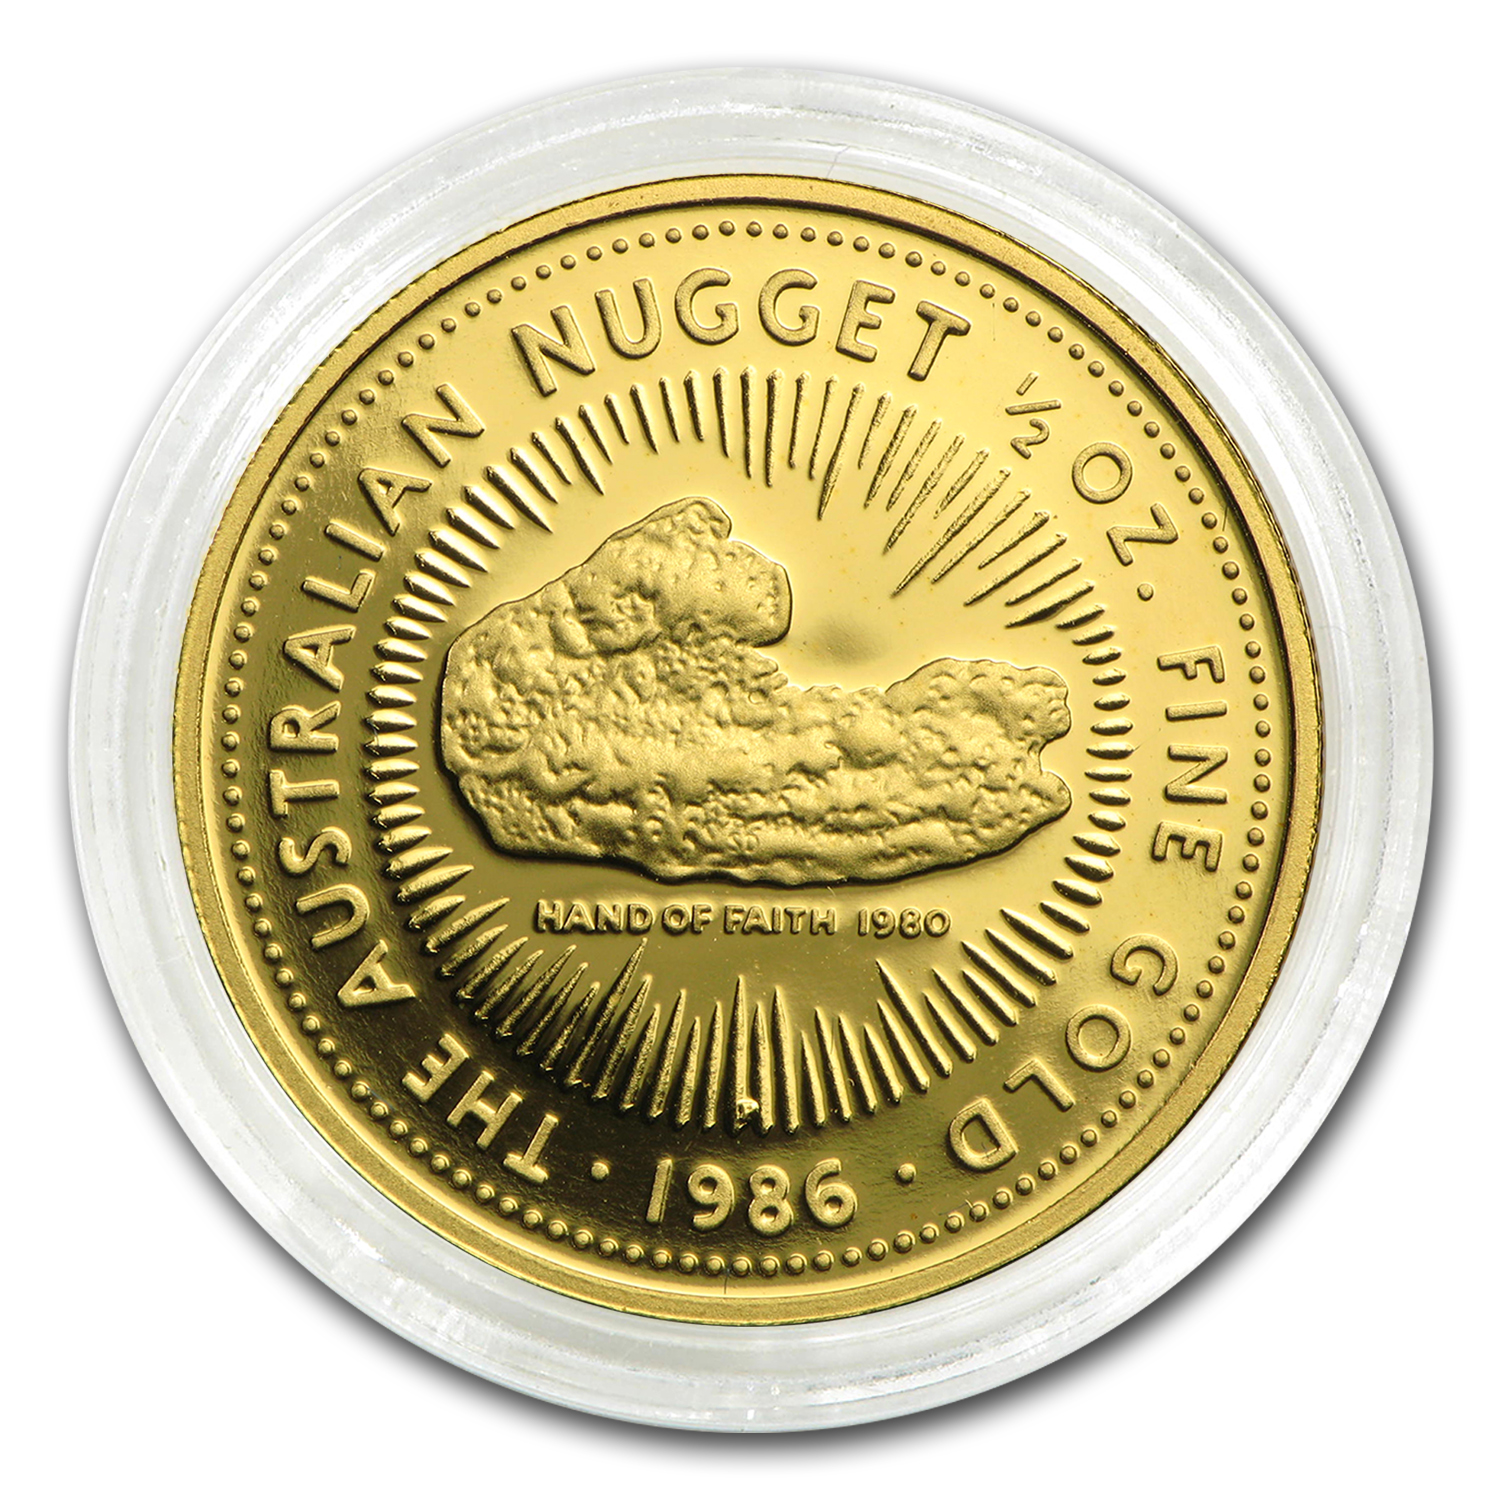 1986 1/2 oz Australian Gold Nugget Proof